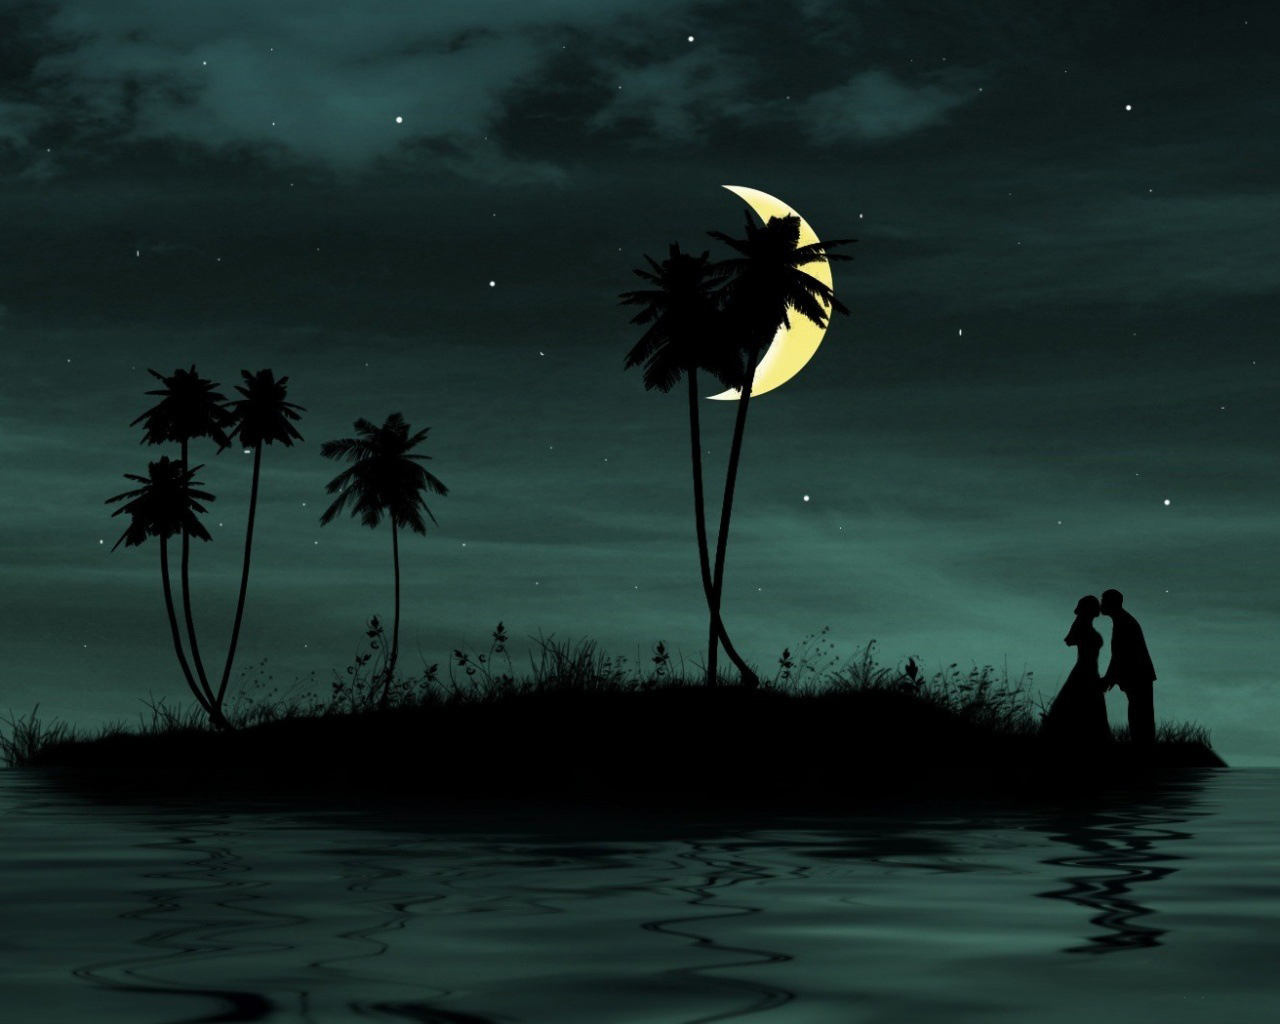 Wallpaper S For Mobile And Pc Moon Night In Romantic -9402